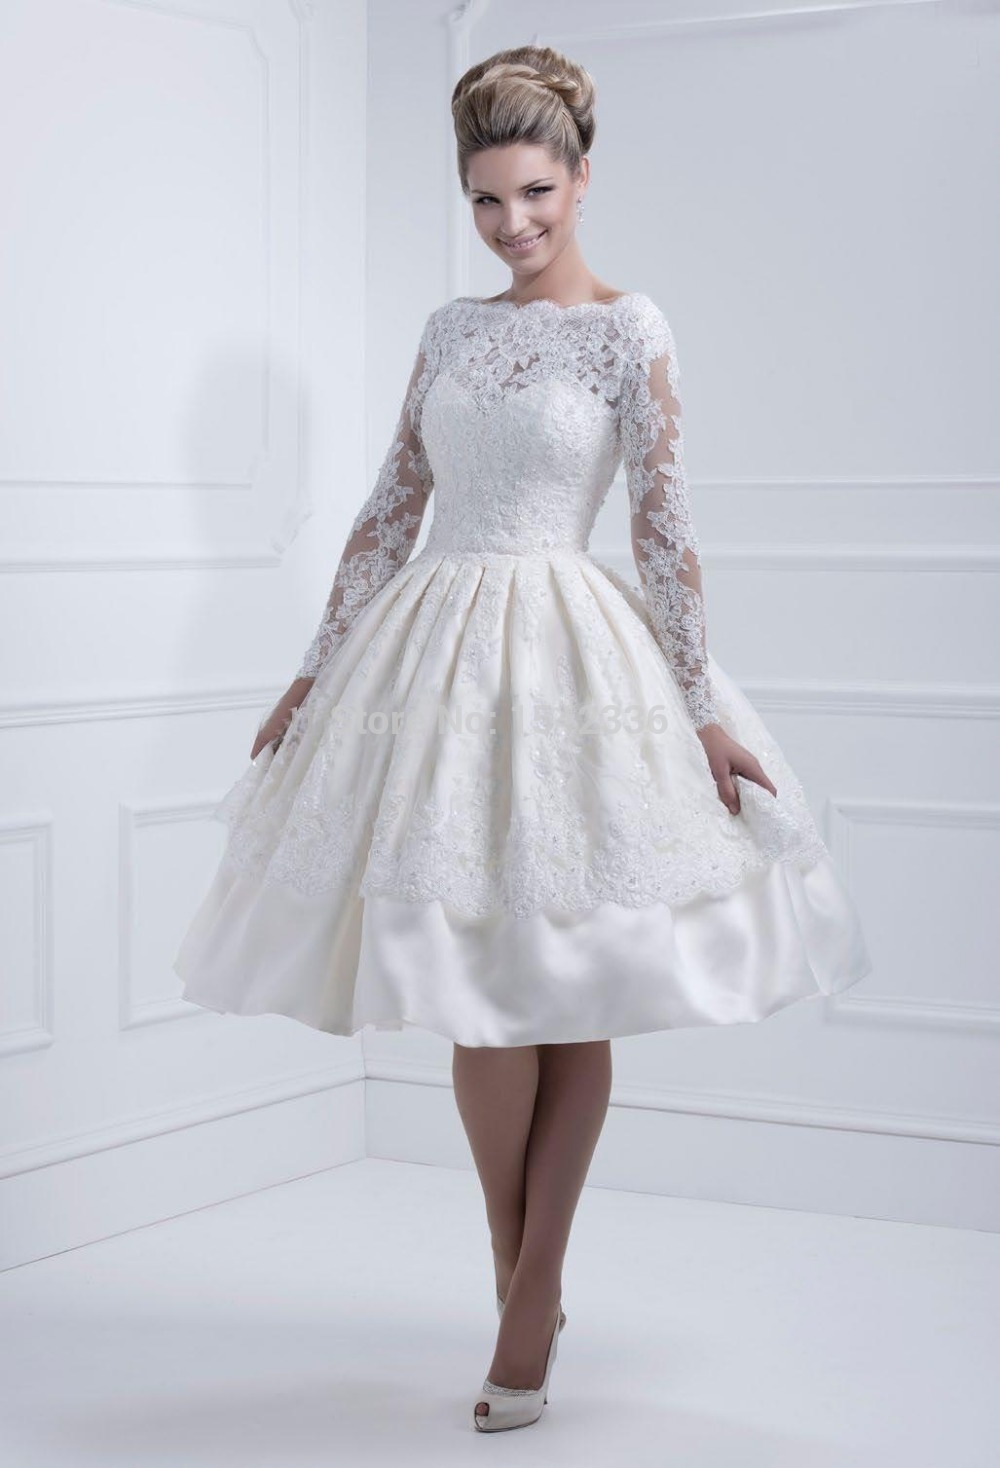 Lace long sleeves wedding dresses 2016 bateau neckline new for Long sleeve lace wedding dresses